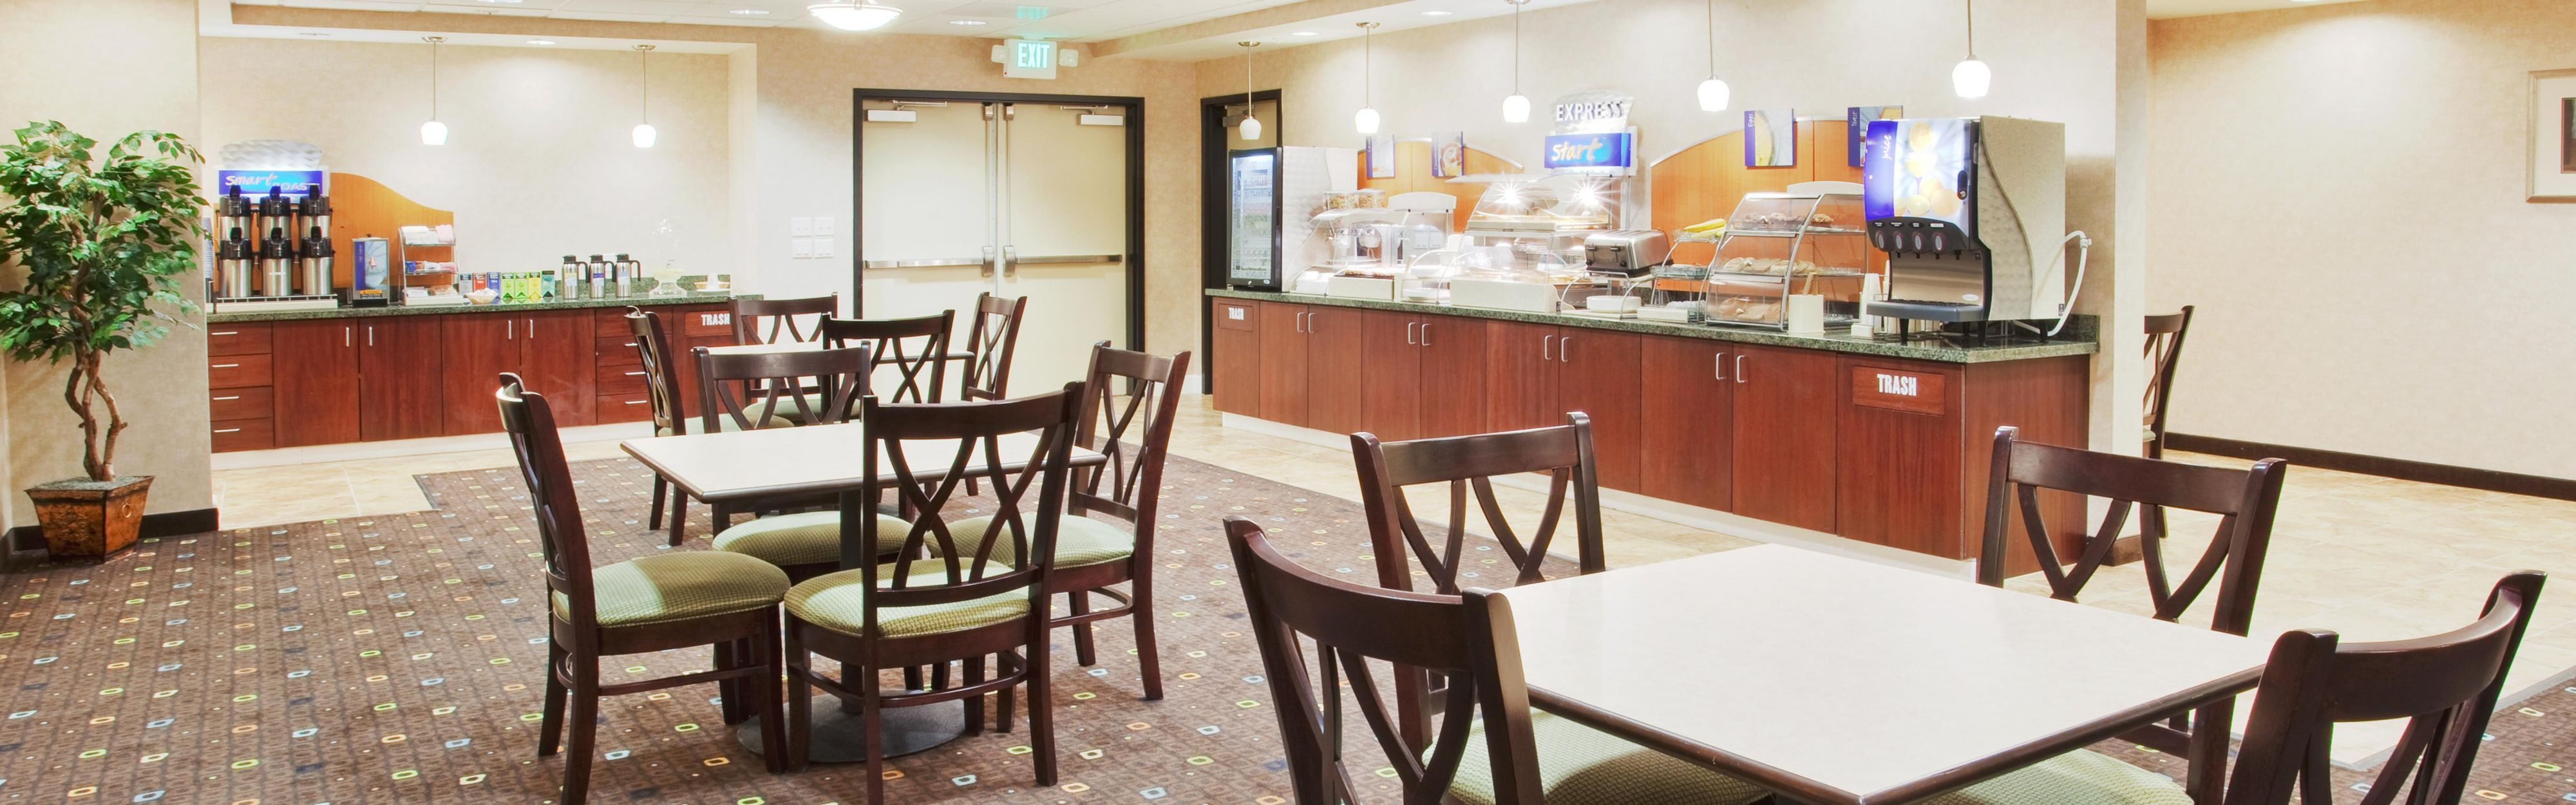 Holiday Inn Express Lodi image 3